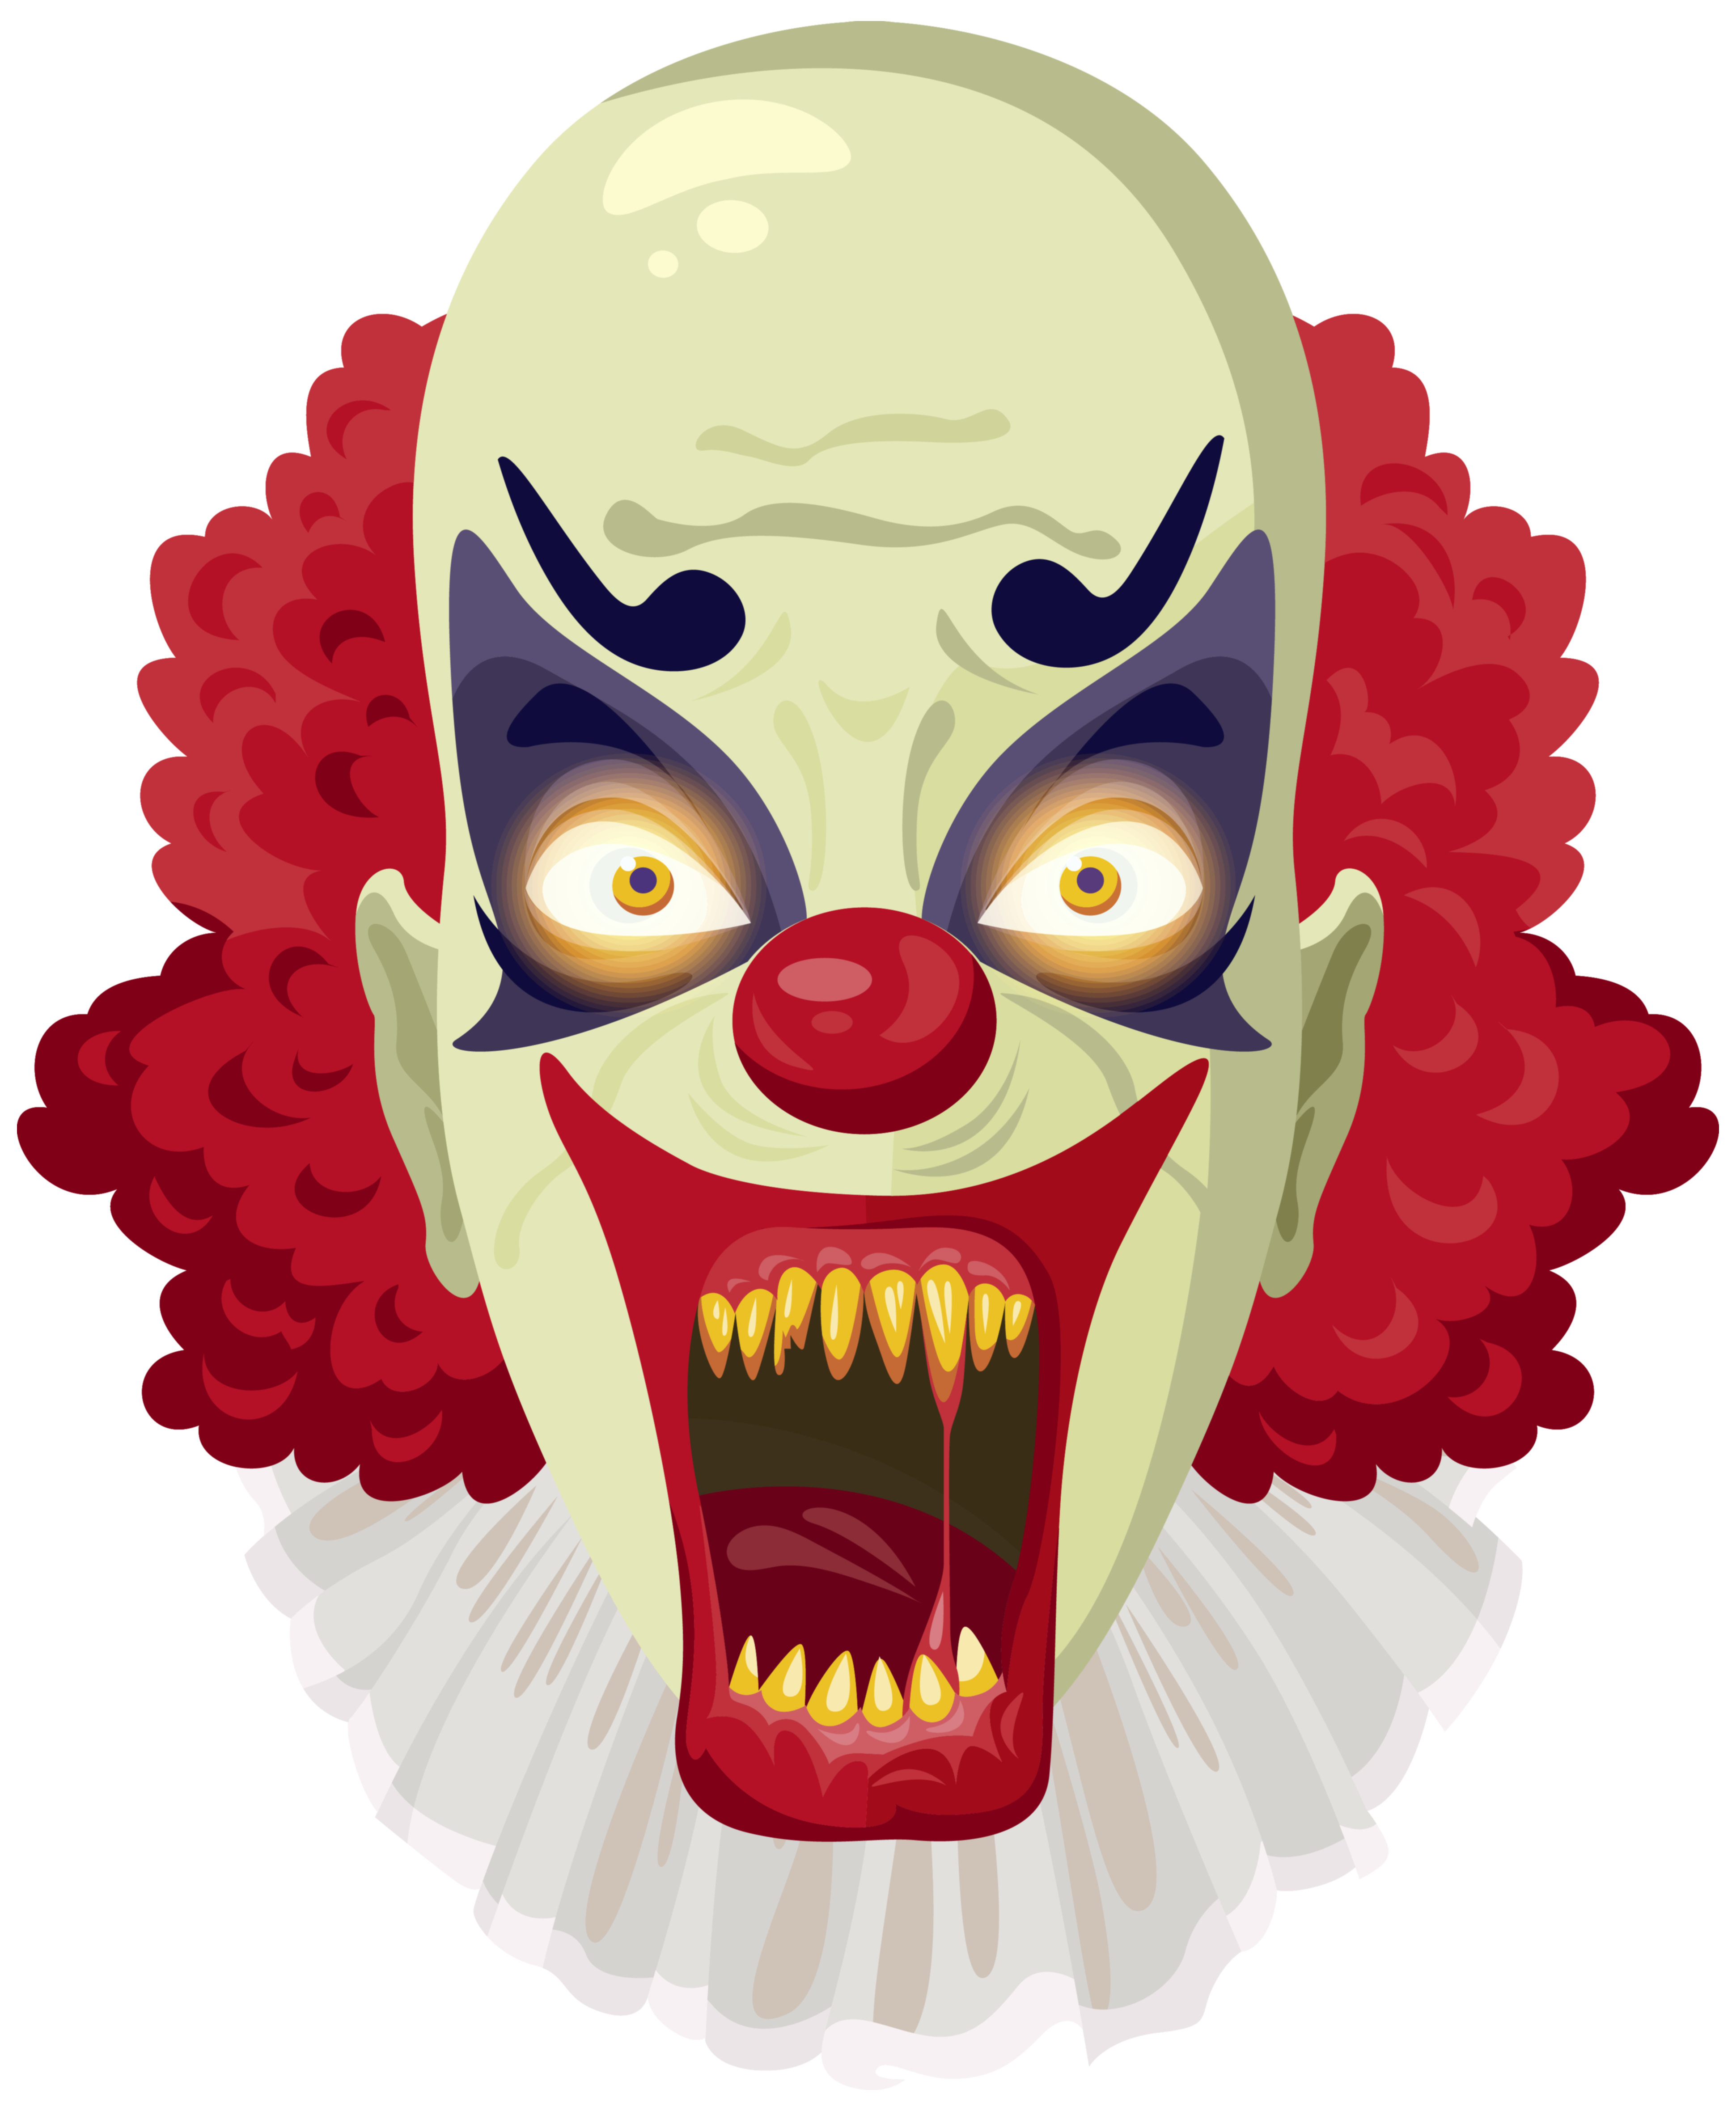 Scary Clown PNG Clipart Image.